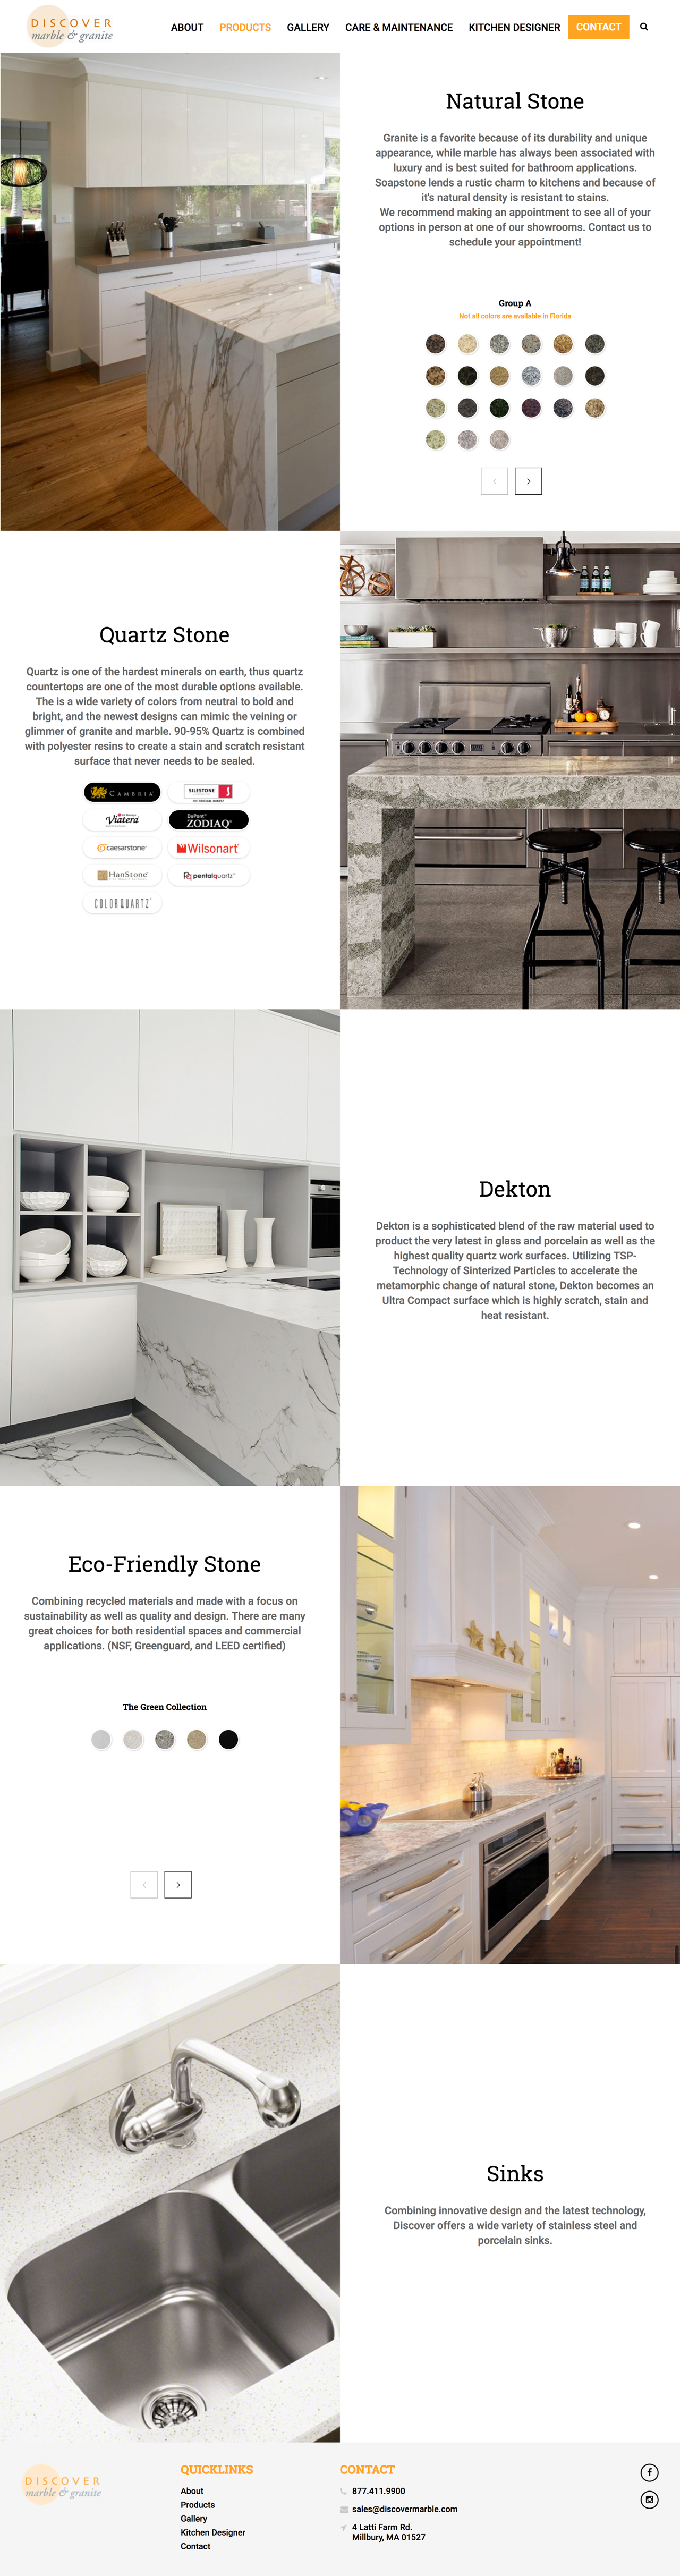 Discover Marble Full Product Showcase